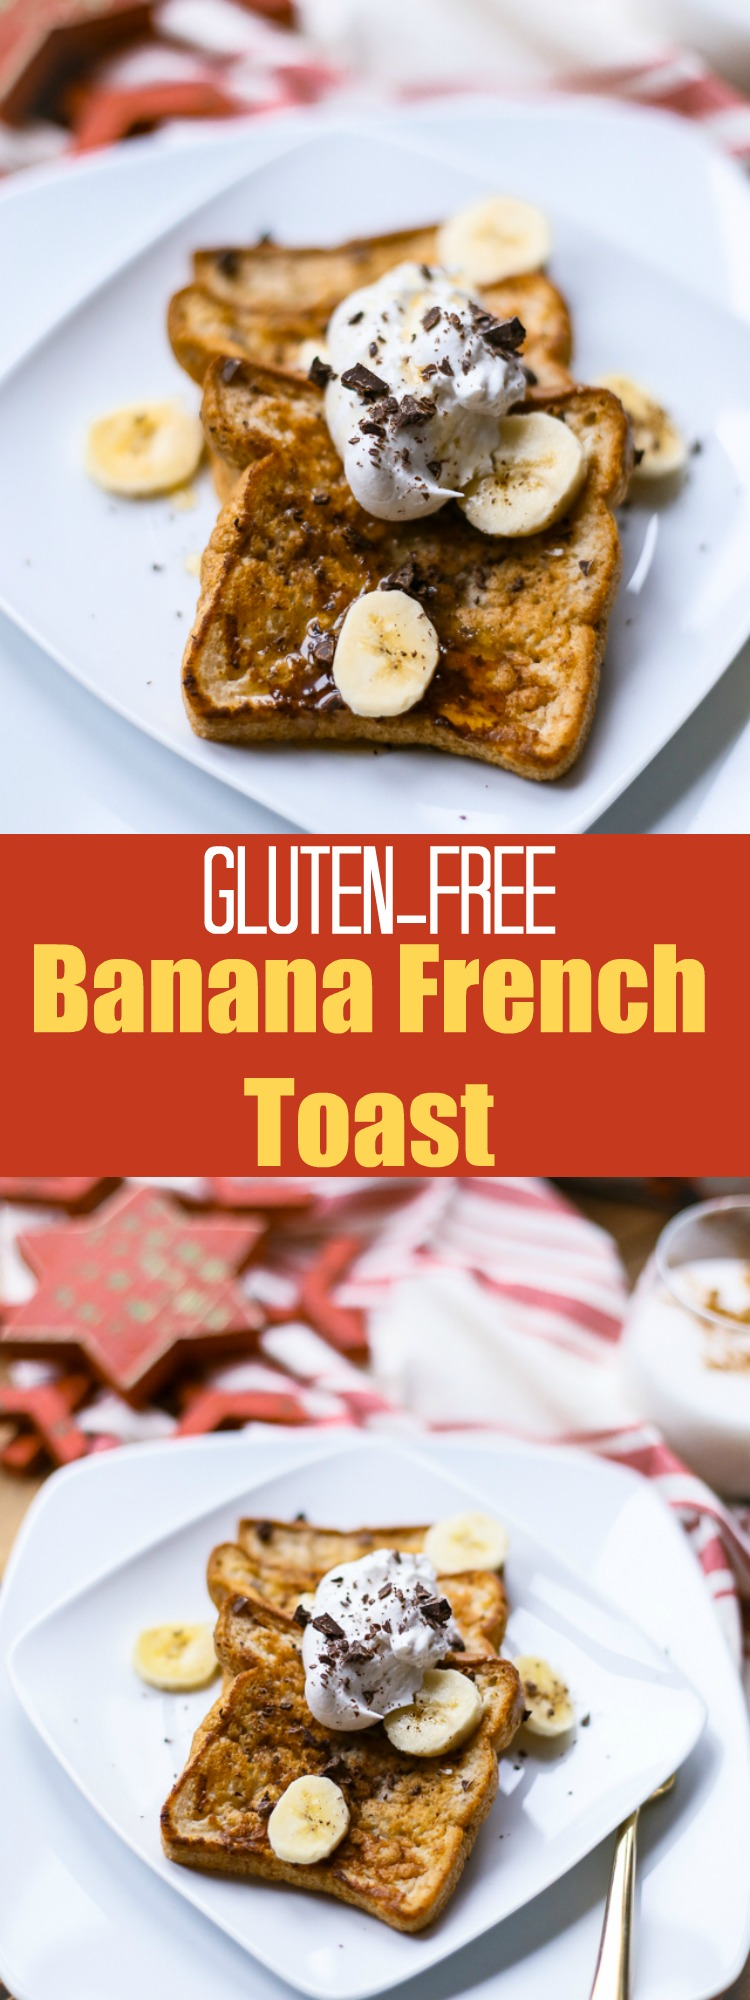 Gluten-Free Banana French Toast for One is a healthy breakfast option that is also vegan-friendly! #glutenfree #frenchtoast #breakfast #vegan